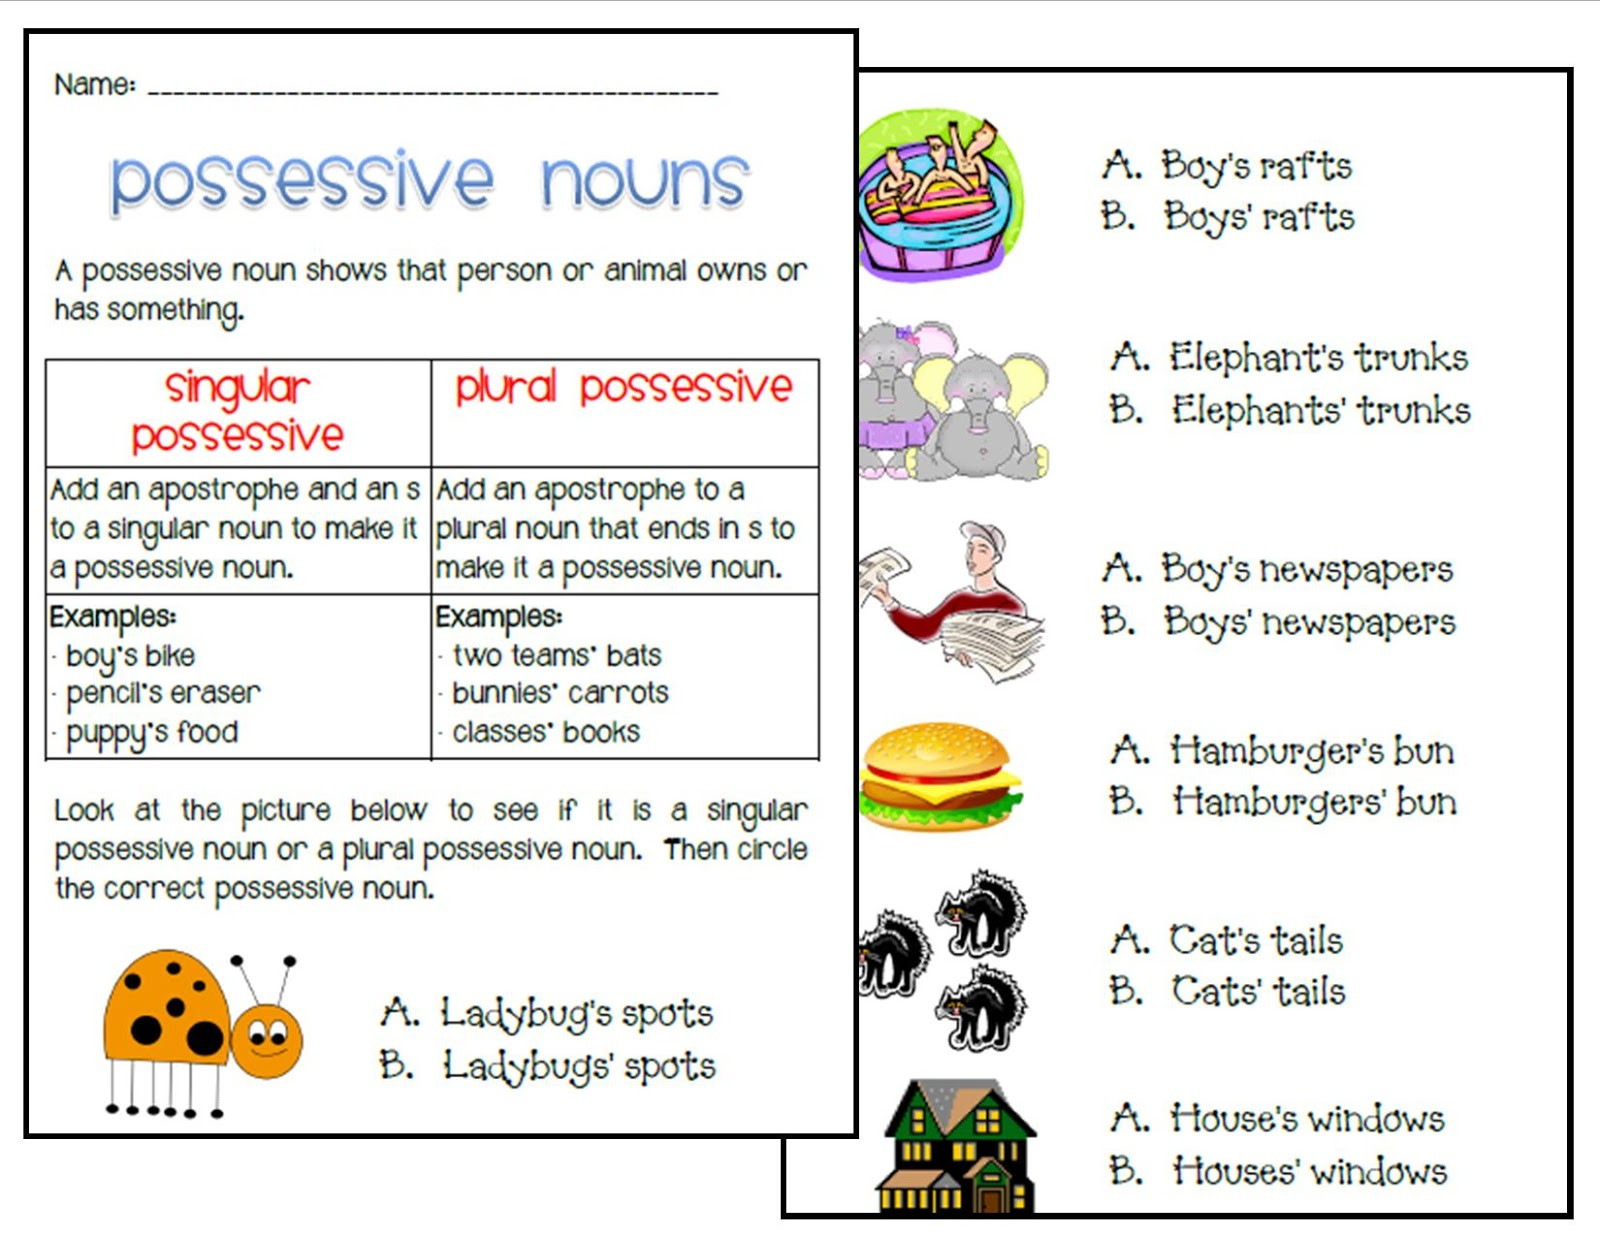 Possessive Nouns Worksheet 2nd Grade Copy Possessive Nouns Lessons Tes Teach